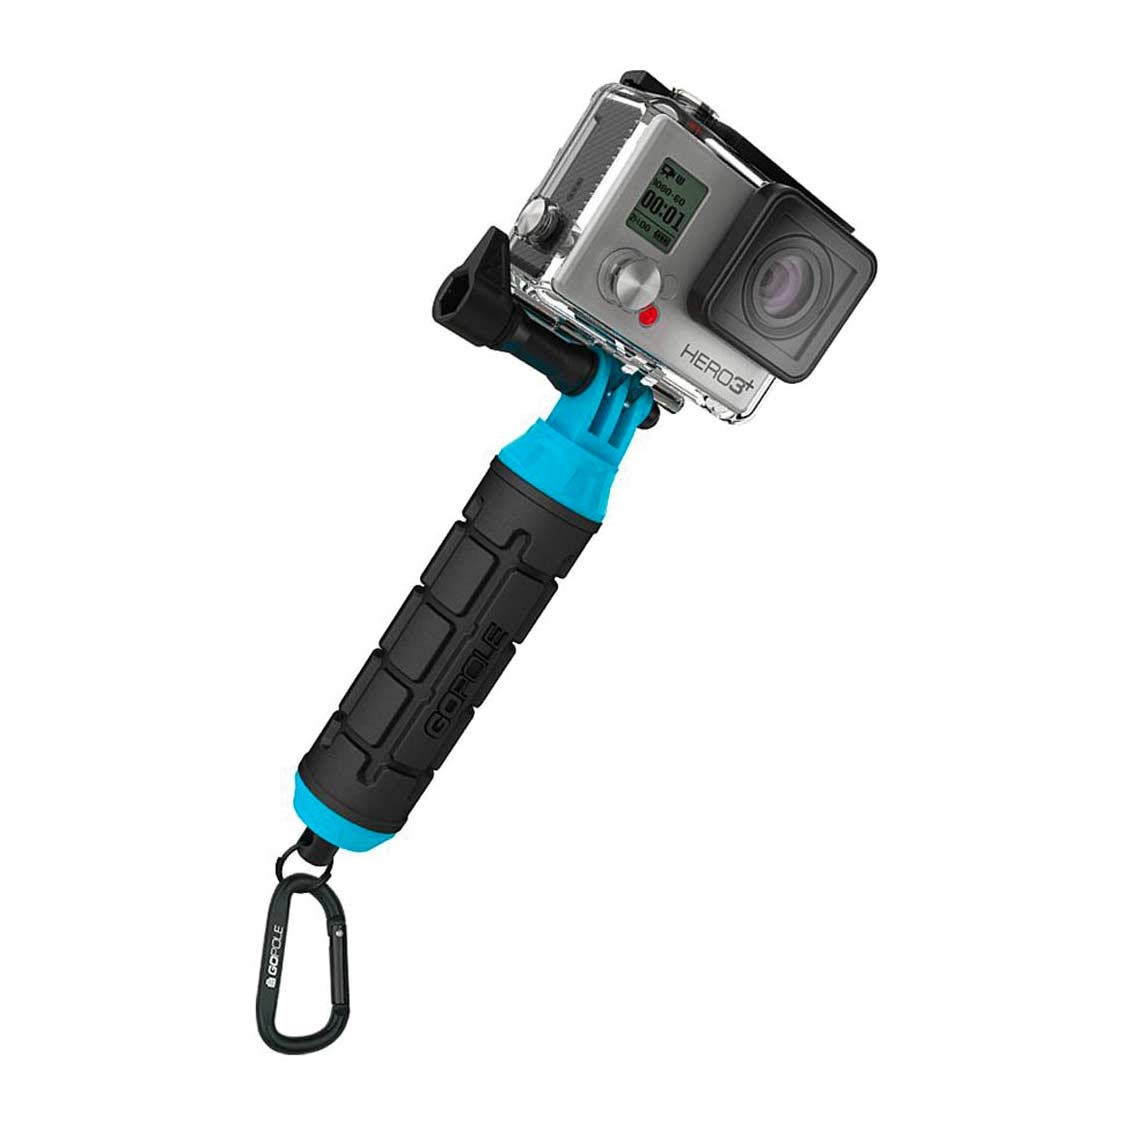 GoPole Grenade Hand Grip for GoPro (NEW)